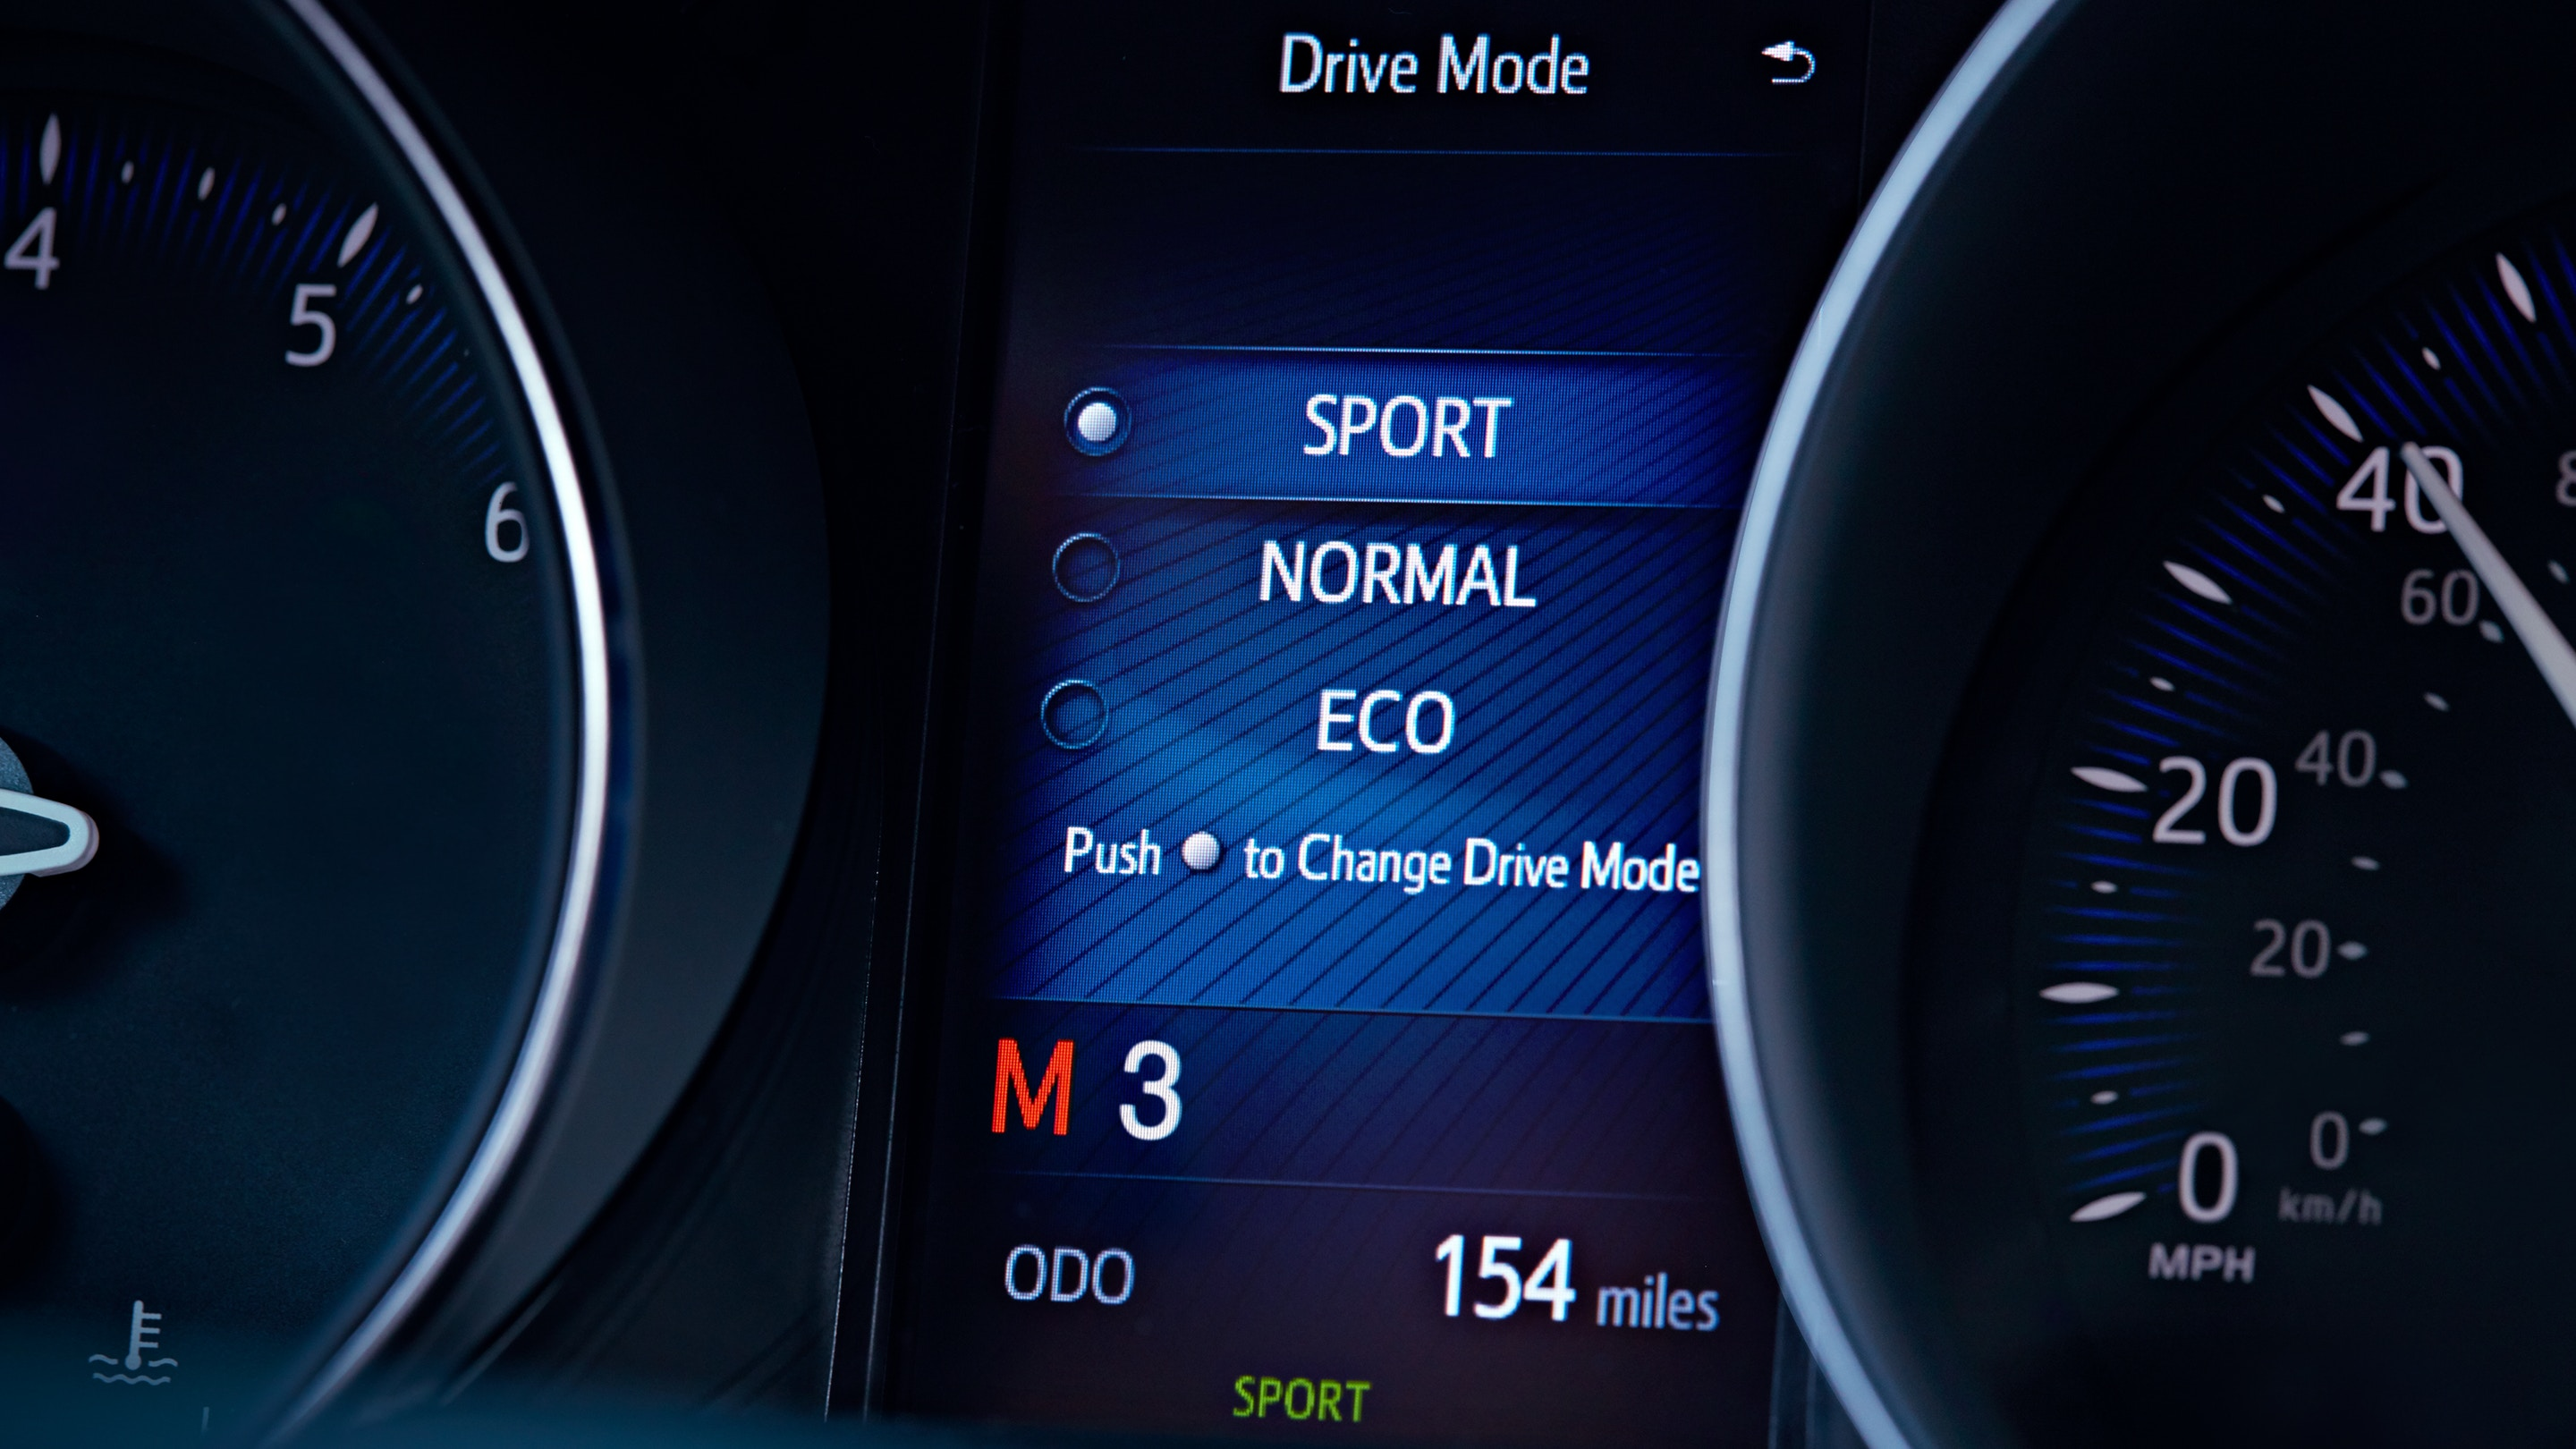 2019 Toyota C-HR's Driving Mode Selection